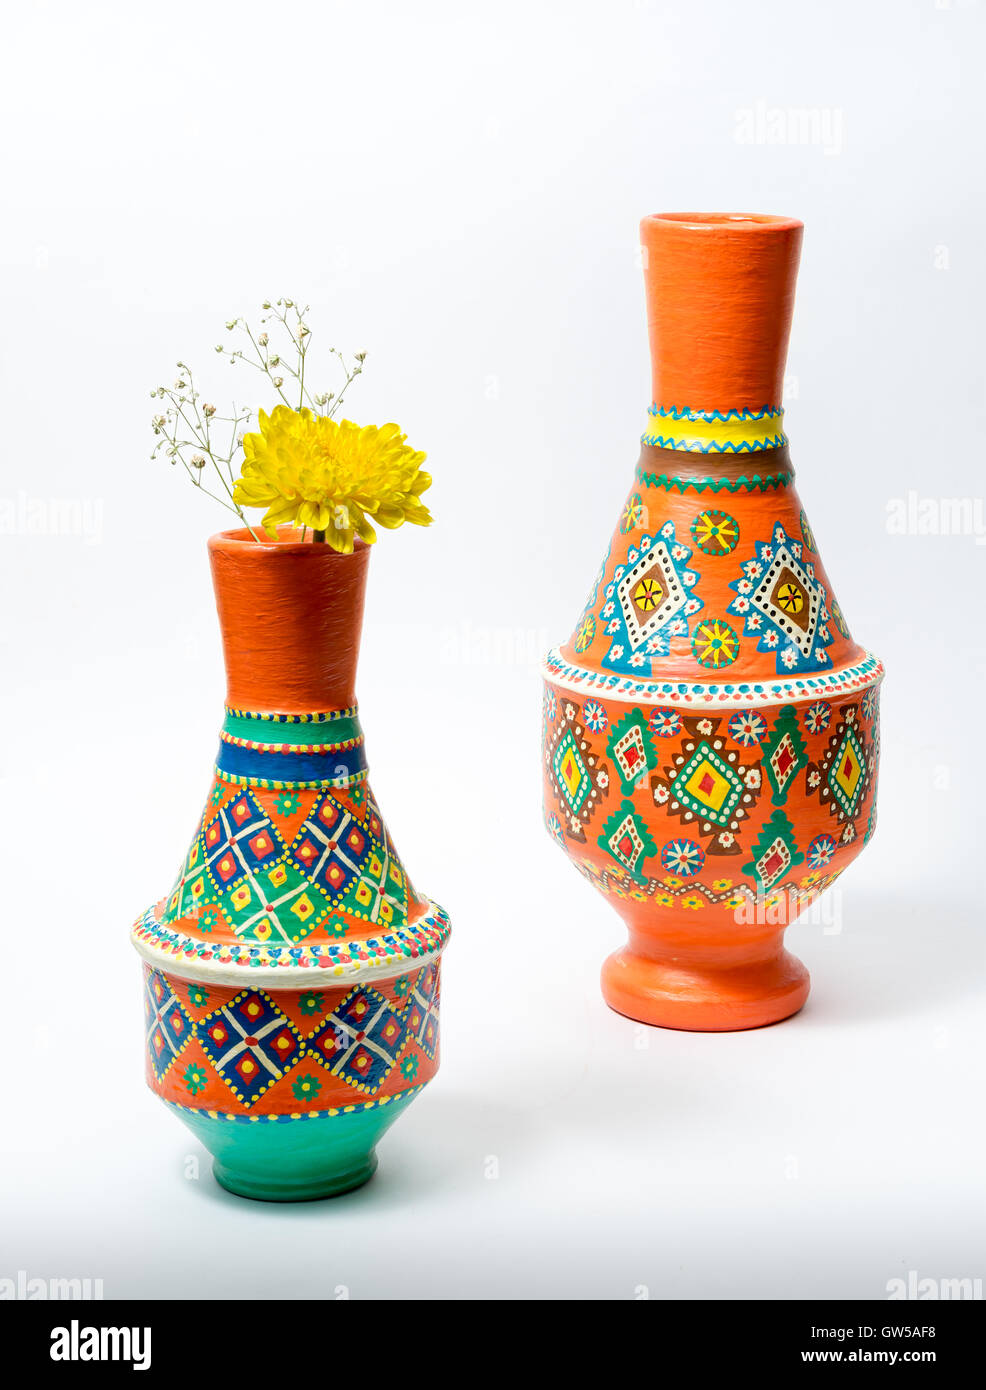 Still life composition of two colorful pottery vases with one still life composition of two colorful pottery vases with one yellow flower on white background reviewsmspy